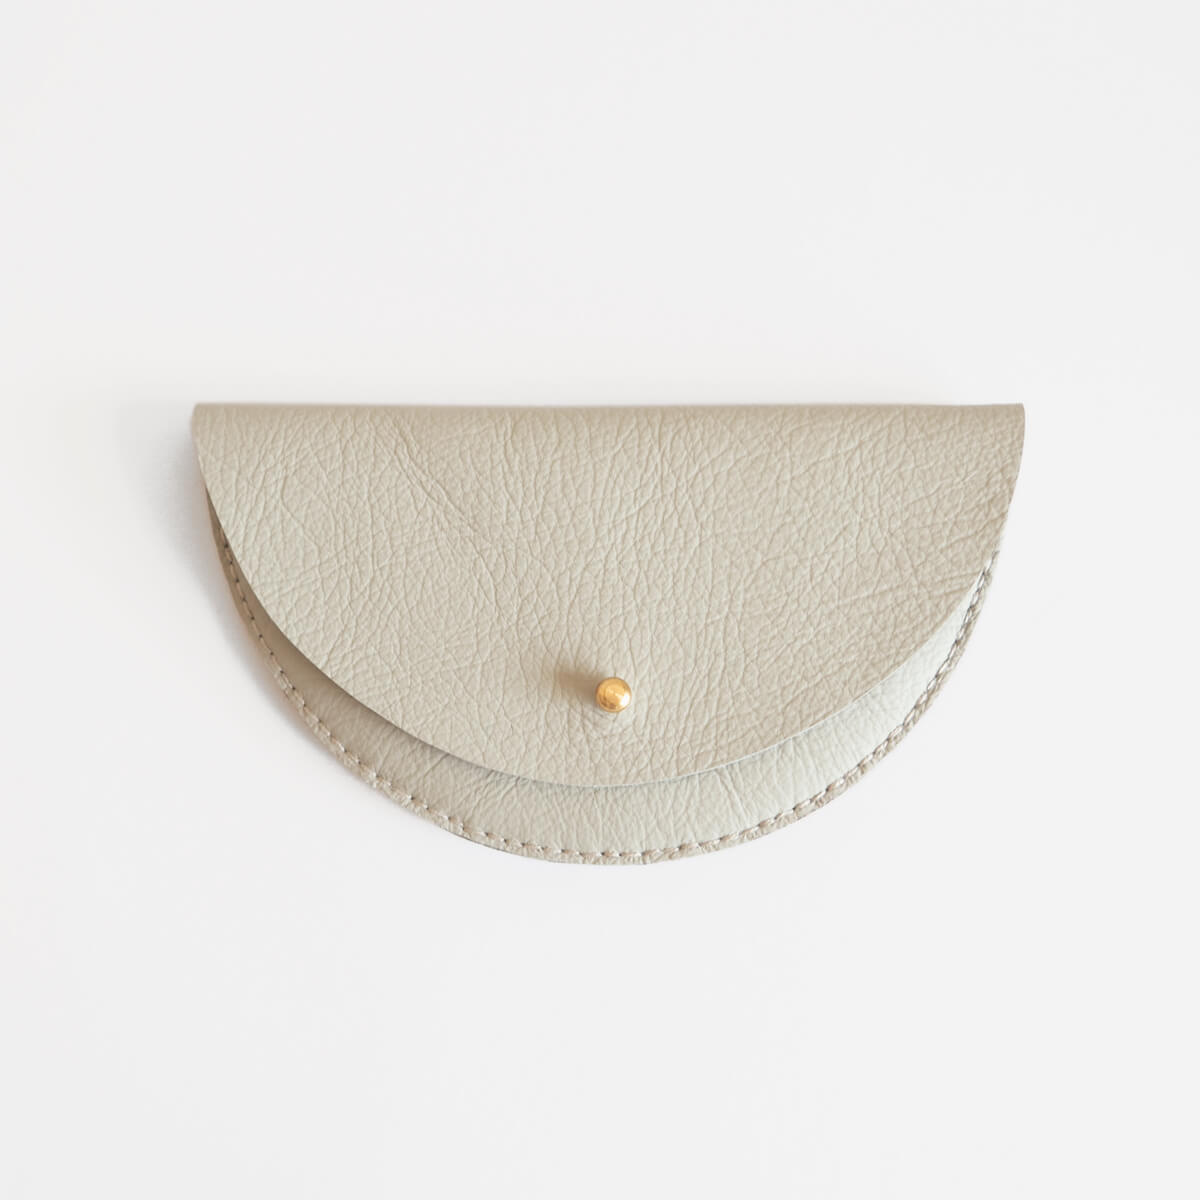 Colette Grande Coin Purse, Dove Grey | Curious Makers